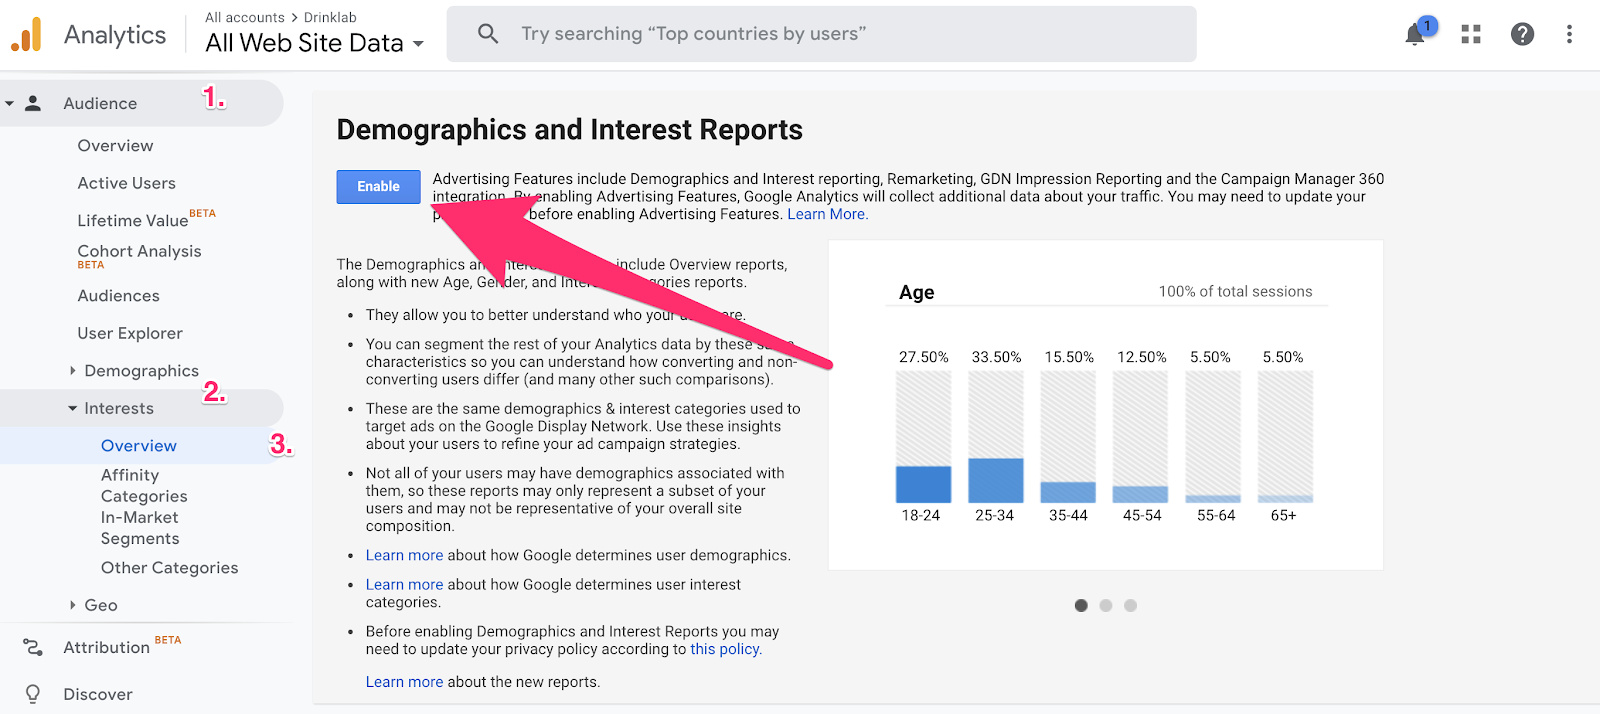 enabling demographics and interest reports